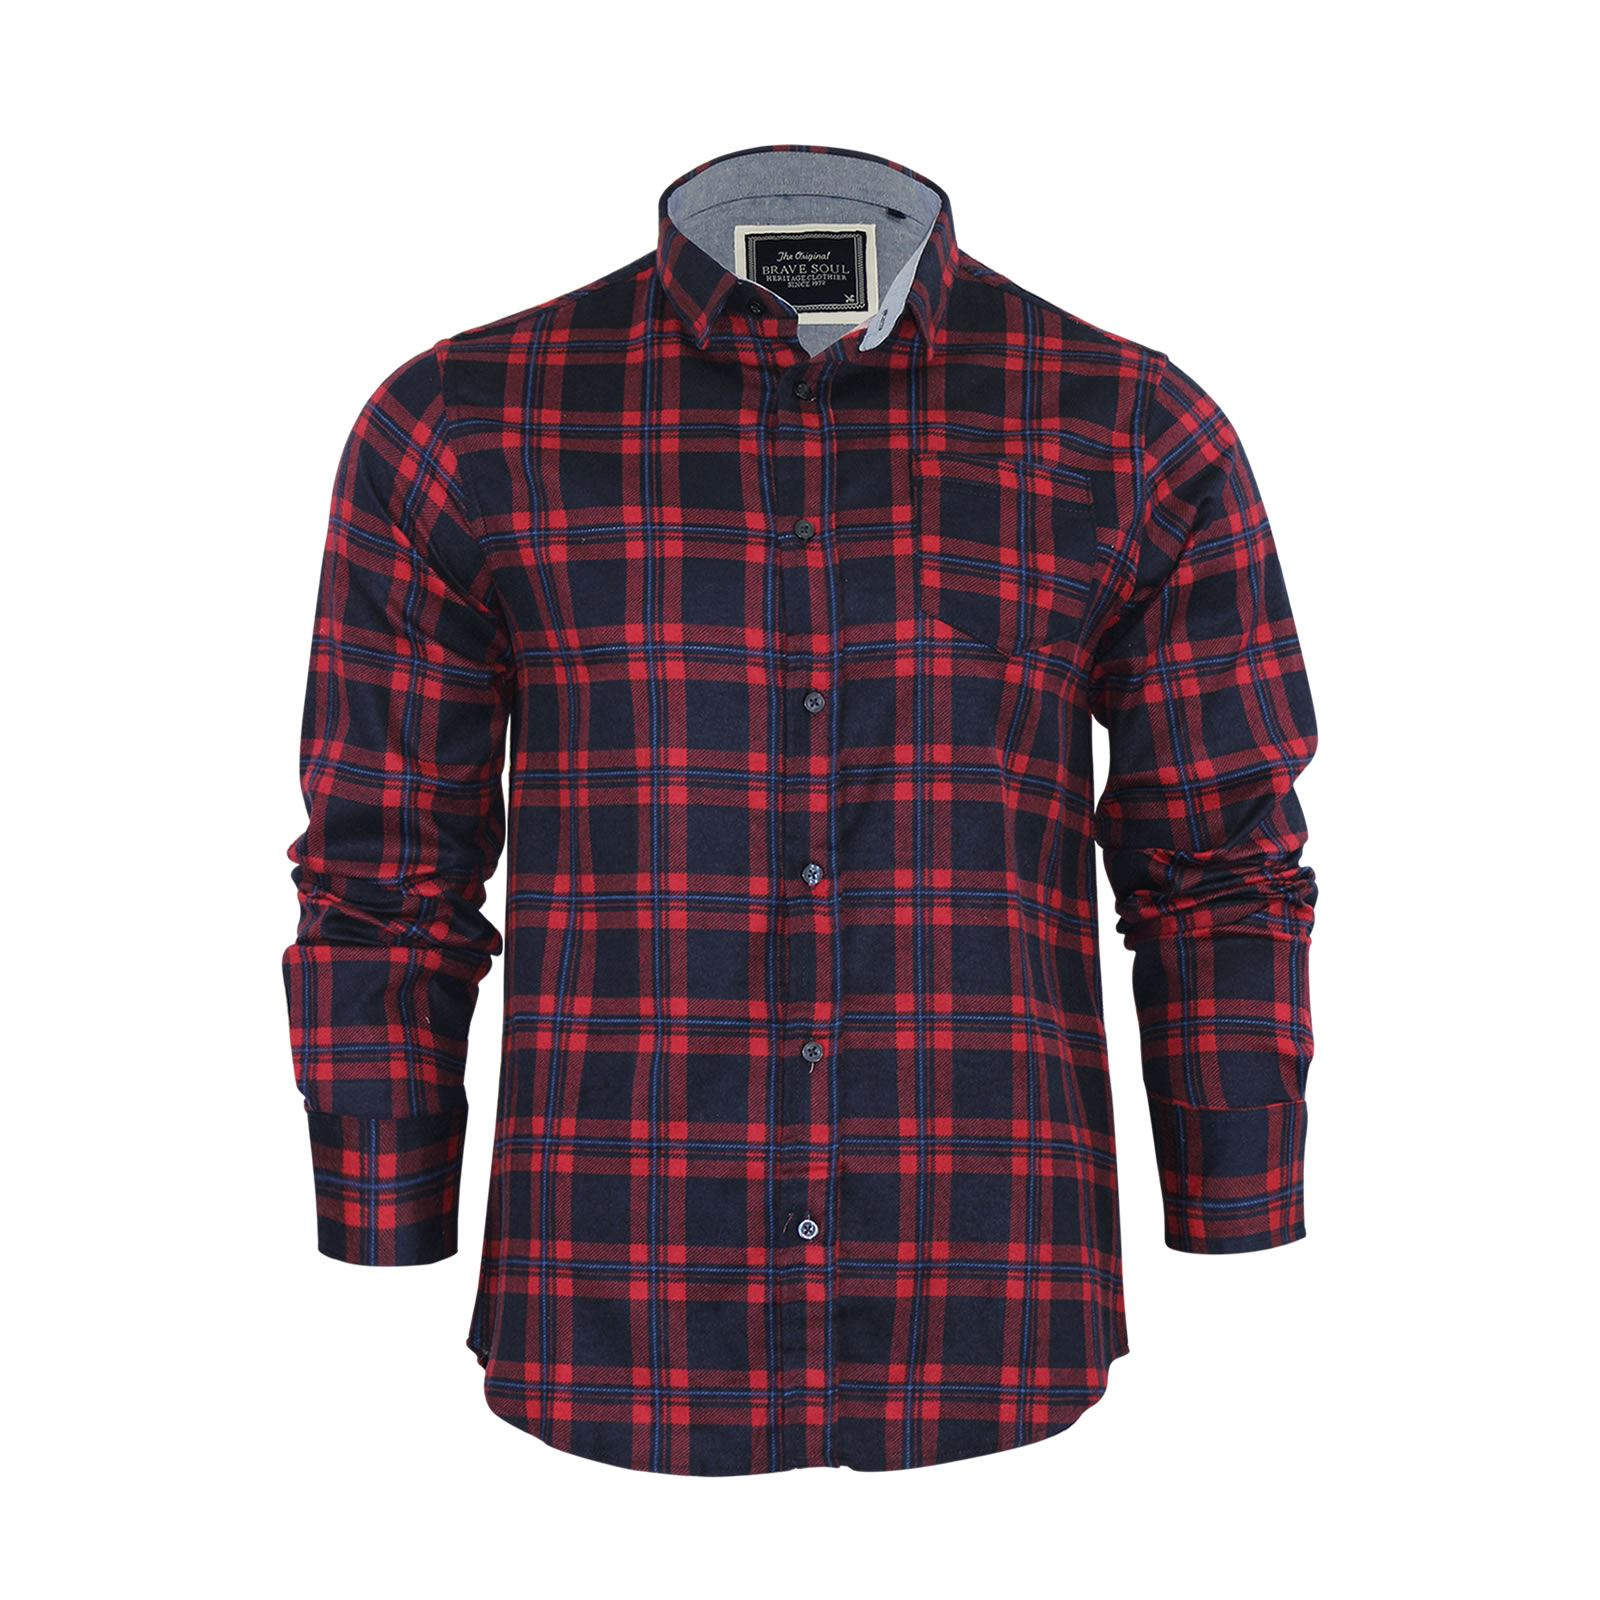 Brave-Soul-Mens-Check-Shirt-Flannel-Brushed-Cotton-Long-Sleeve-Casual-Top thumbnail 21